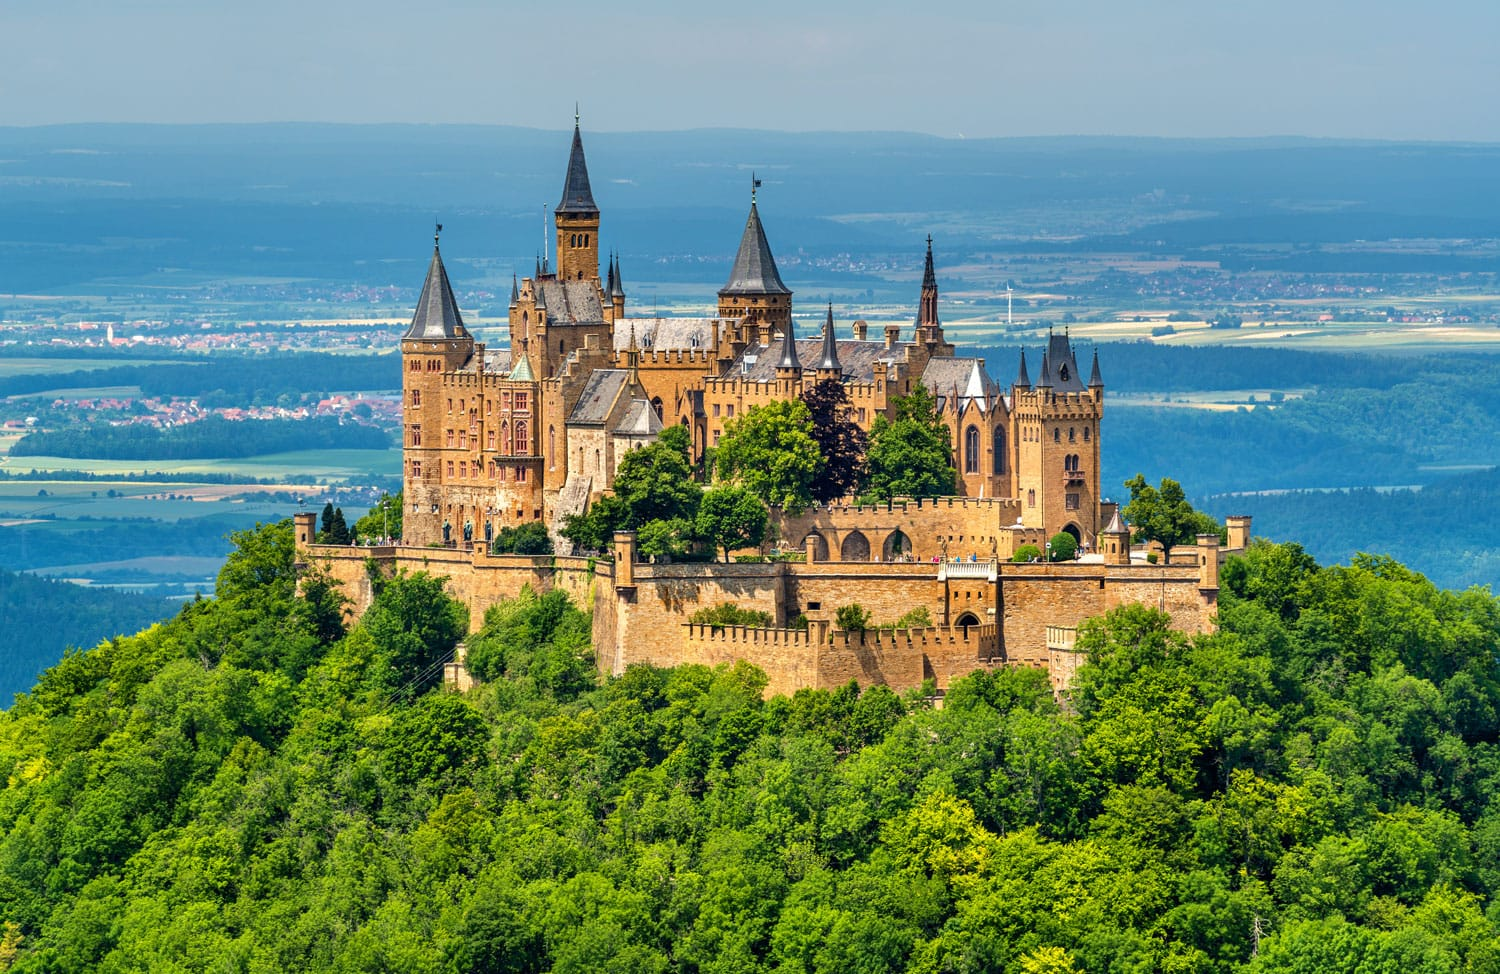 View of Hohenzollern Castle in the Swabian Alps - Baden-Wurttemberg, Germany